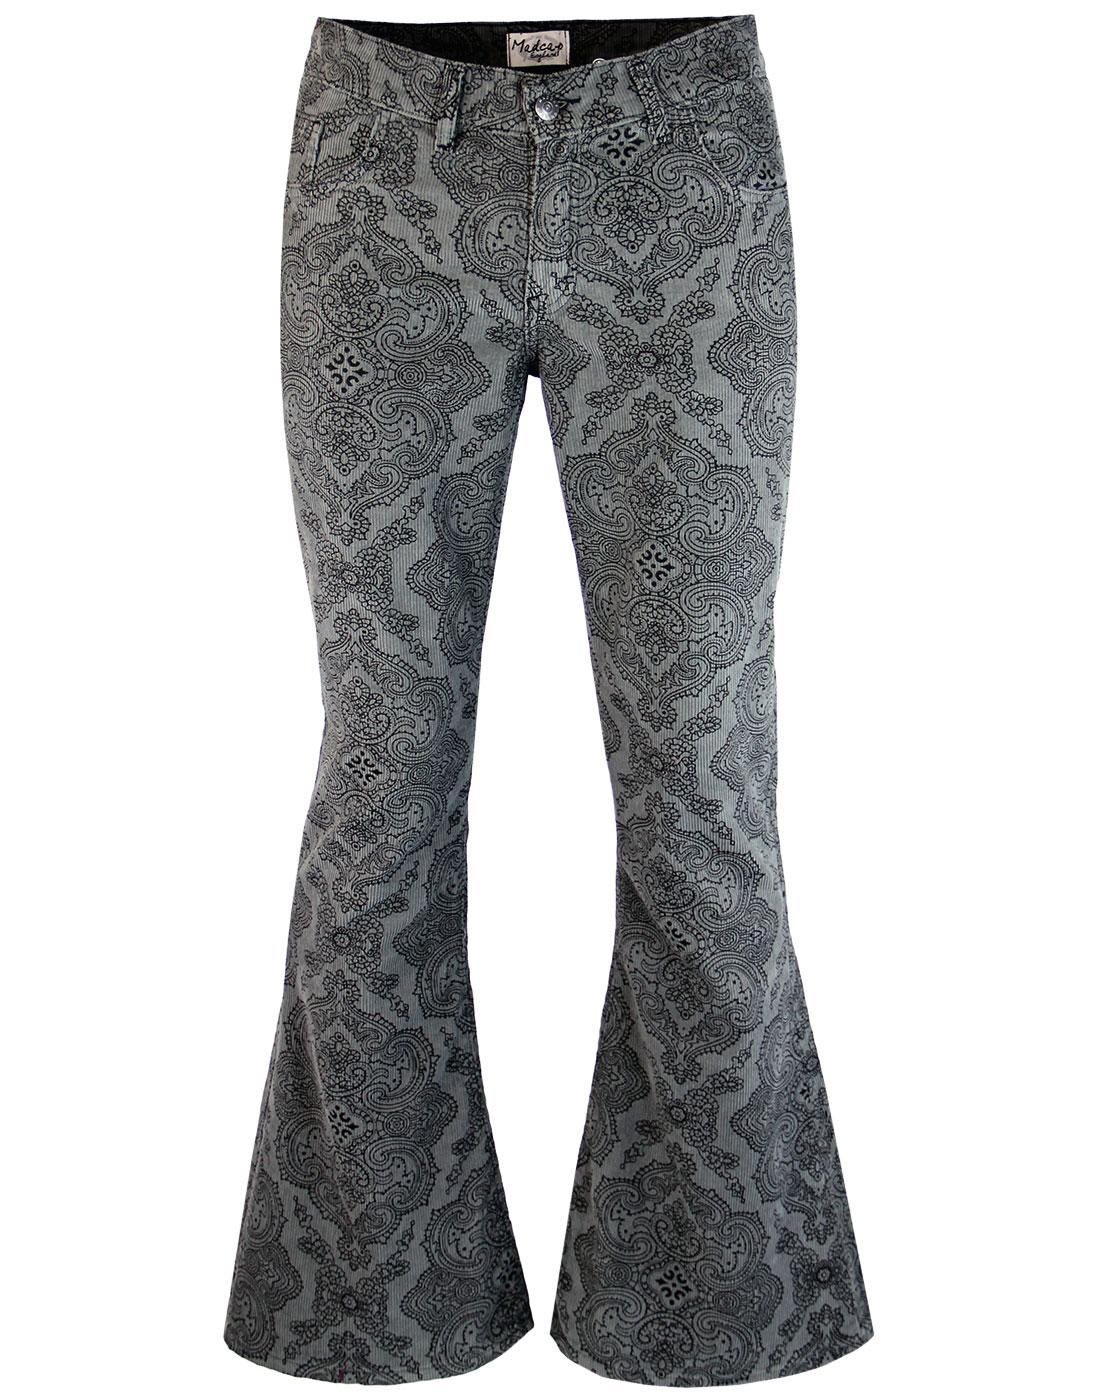 madcap england paisley rave bellbottom flares grey